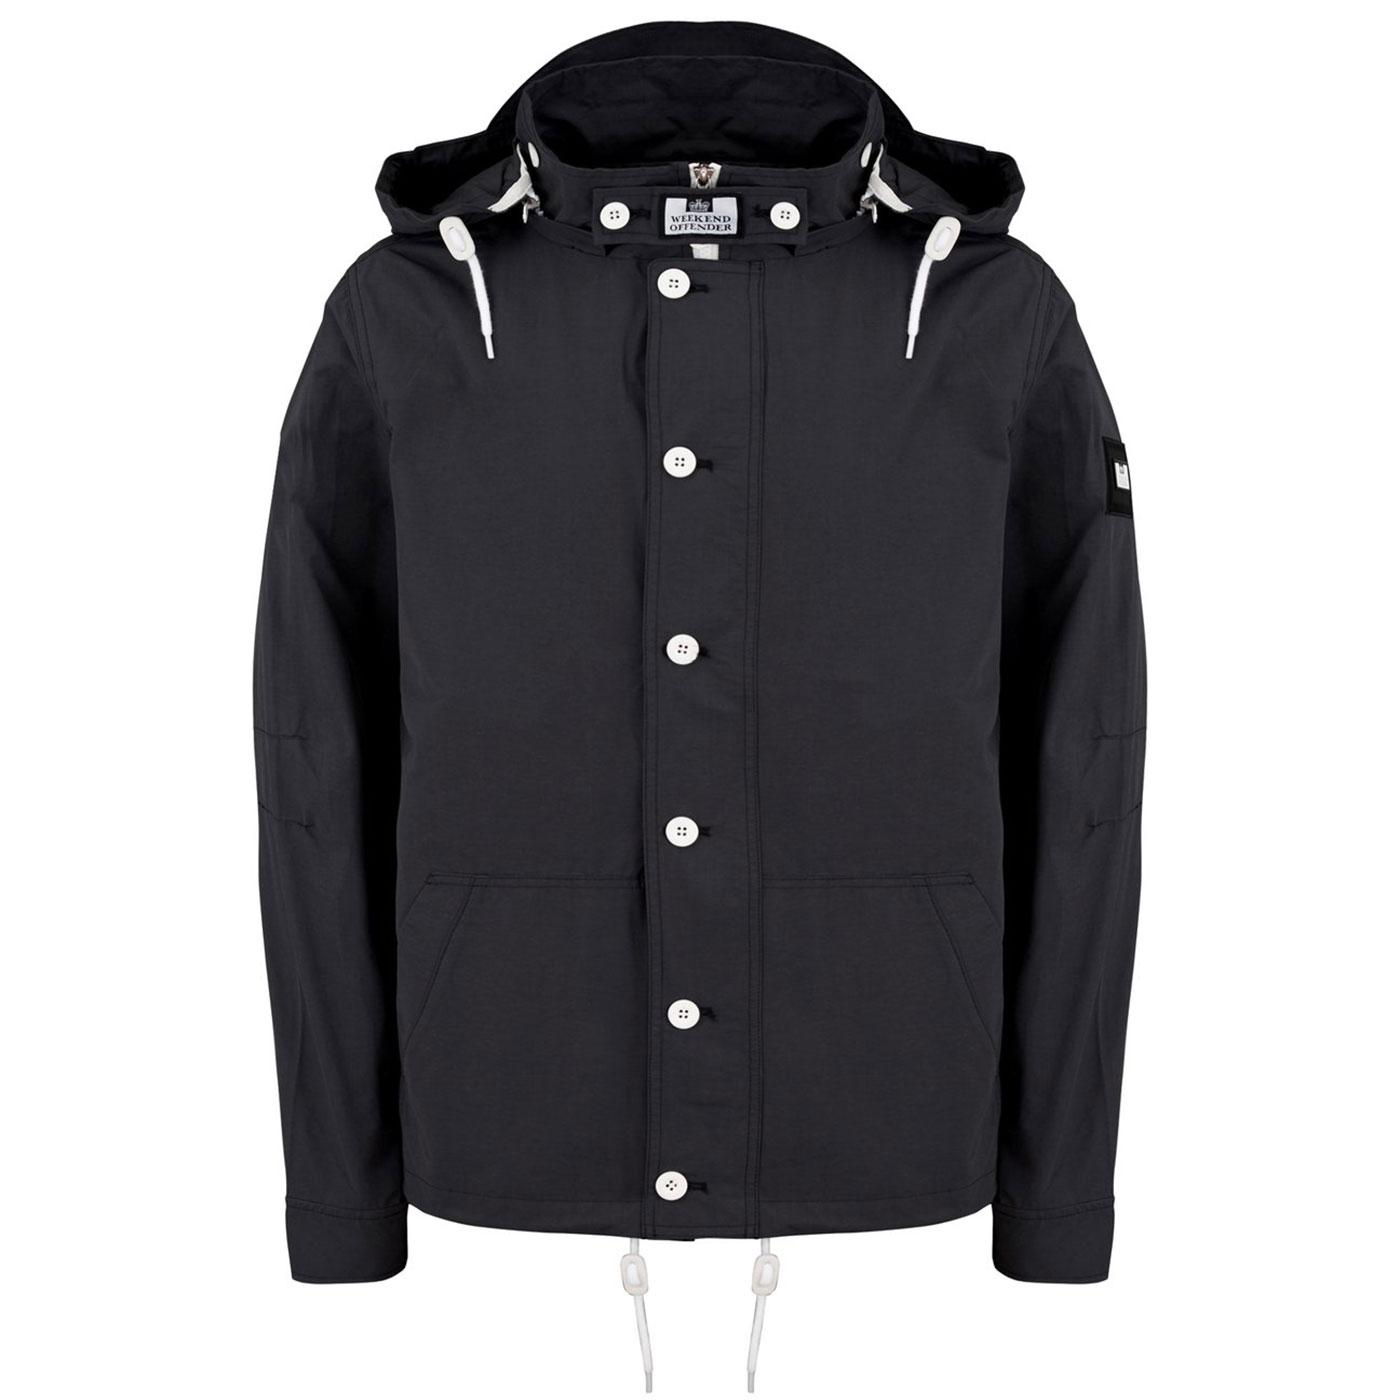 Naz WEEKEND OFFENDER Retro Casuals Hooded Jacket C